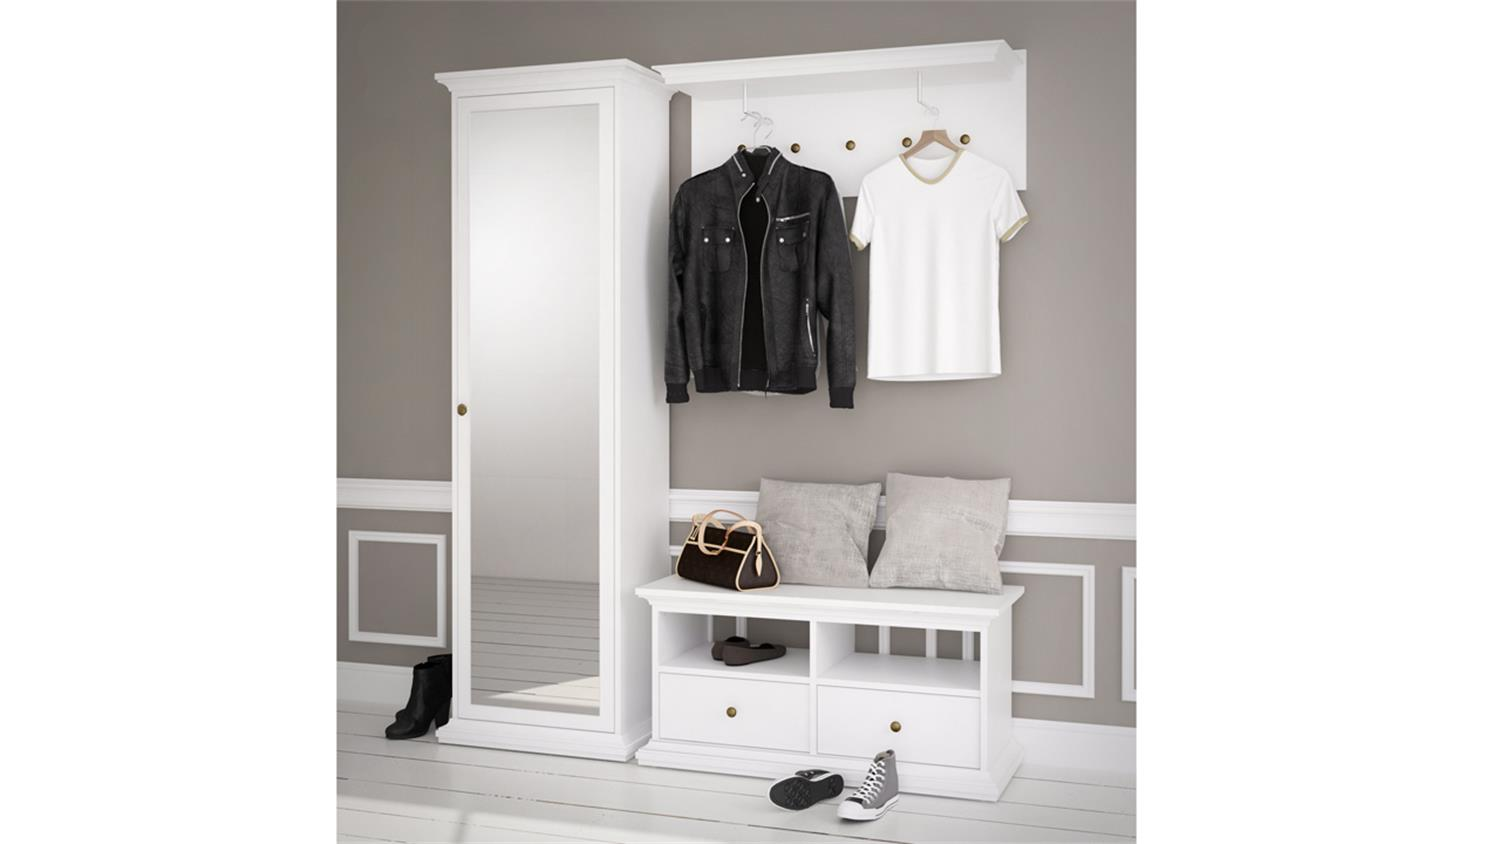 garderobe wei landhaus garderobe wei landhausstil my. Black Bedroom Furniture Sets. Home Design Ideas